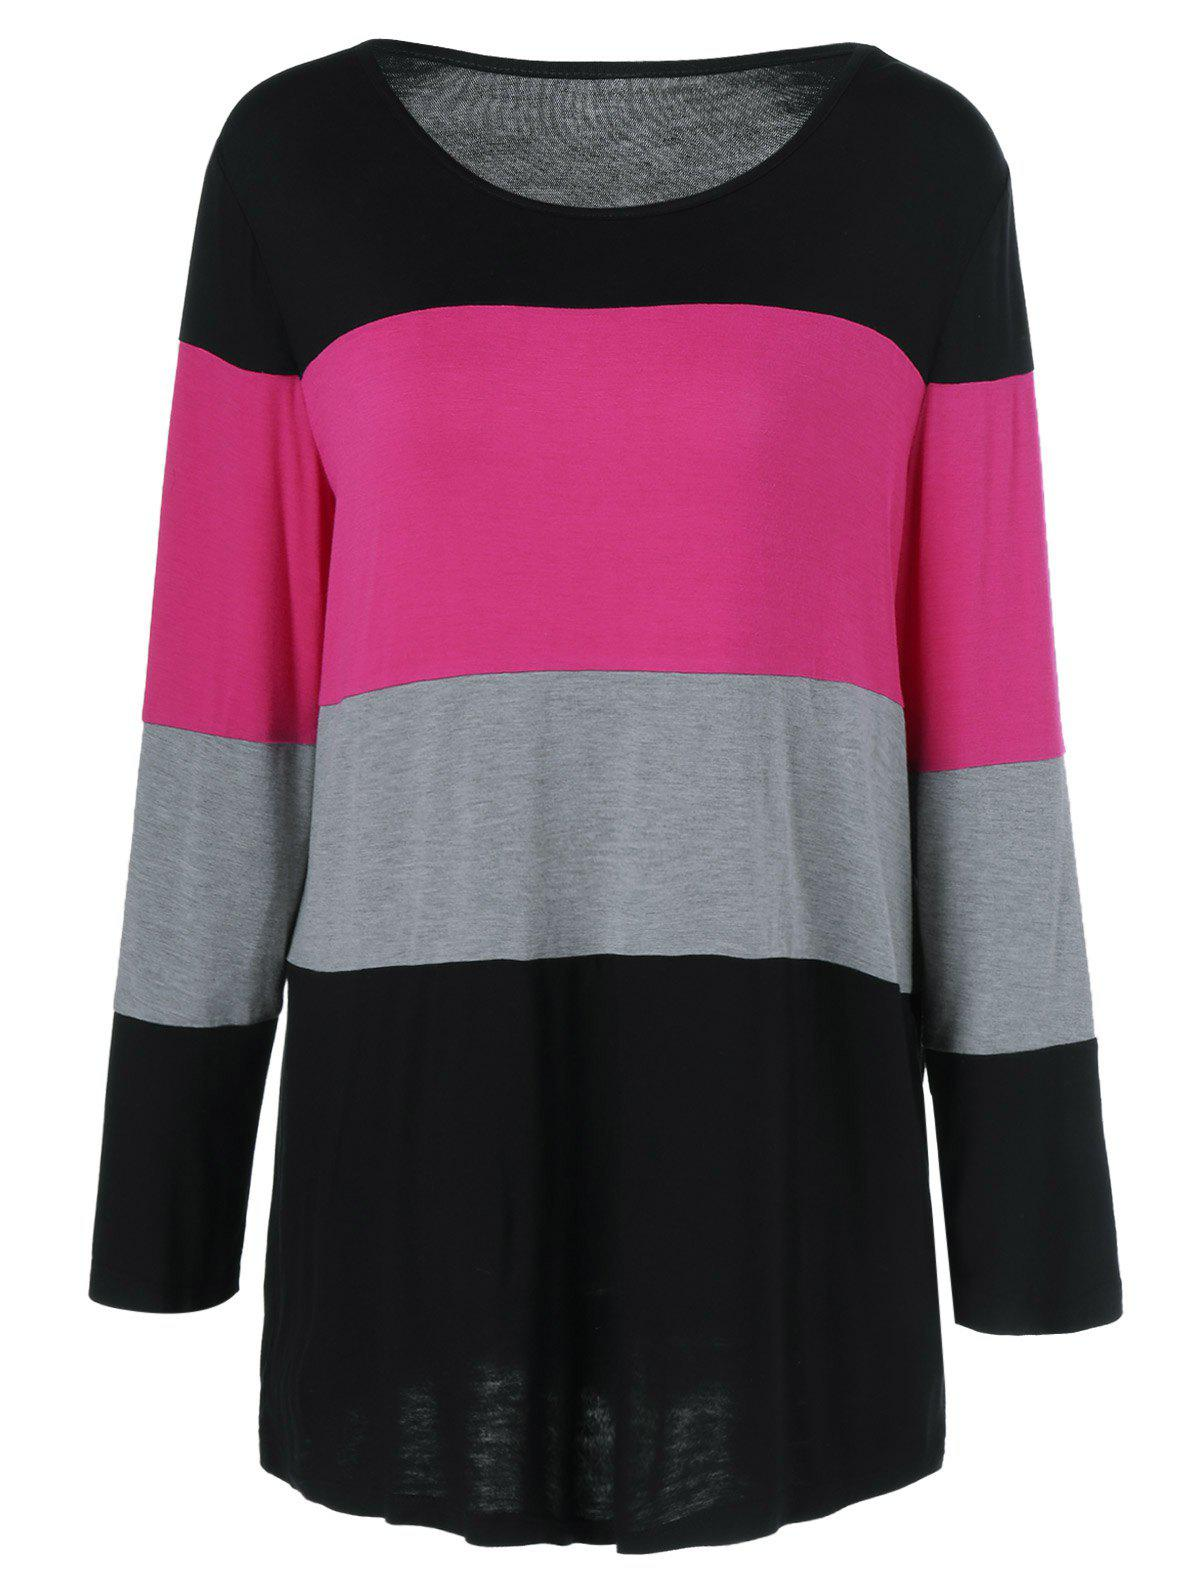 Plus Size Colorful Striped Comfy T-ShirtWOMEN<br><br>Size: 4XL; Color: BLACK AND PINK; Material: Polyester,Spandex; Shirt Length: Long; Sleeve Length: Full; Collar: Scoop Neck; Style: Casual; Season: Fall,Spring; Pattern Type: Striped; Weight: 0.313kg; Package Contents: 1 x T-Shirt;